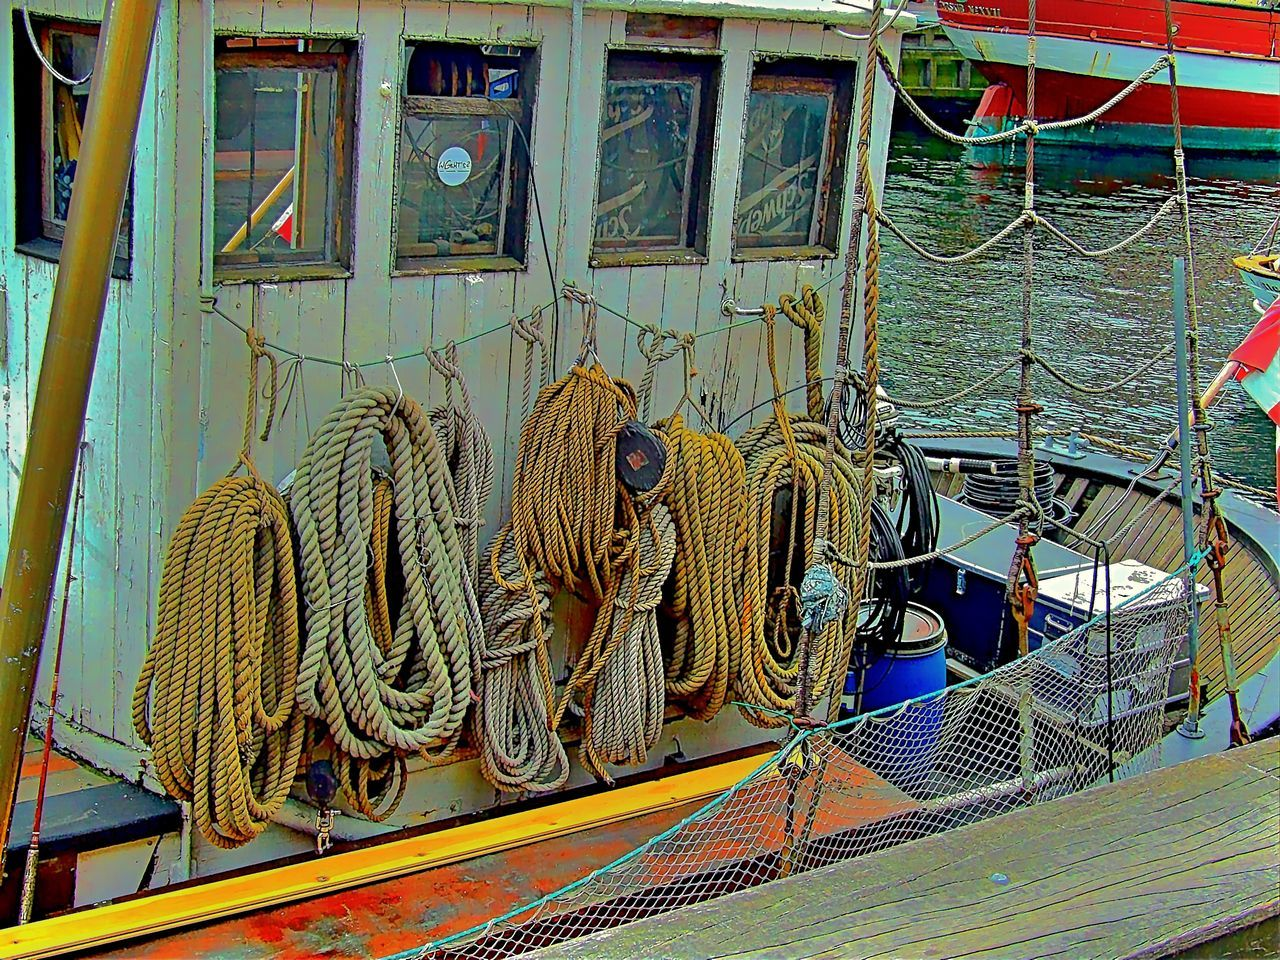 Anchorage Architectural Feature Architecture Art And Craft Berth Built Structure Cord Cords Day Famous Place Fishboat Fishing Boat Fishing Boats Harbor History Rope Ropes Ropes Boats Sea Seamanship Shiny Ship Tourism Travel Travel Destinations